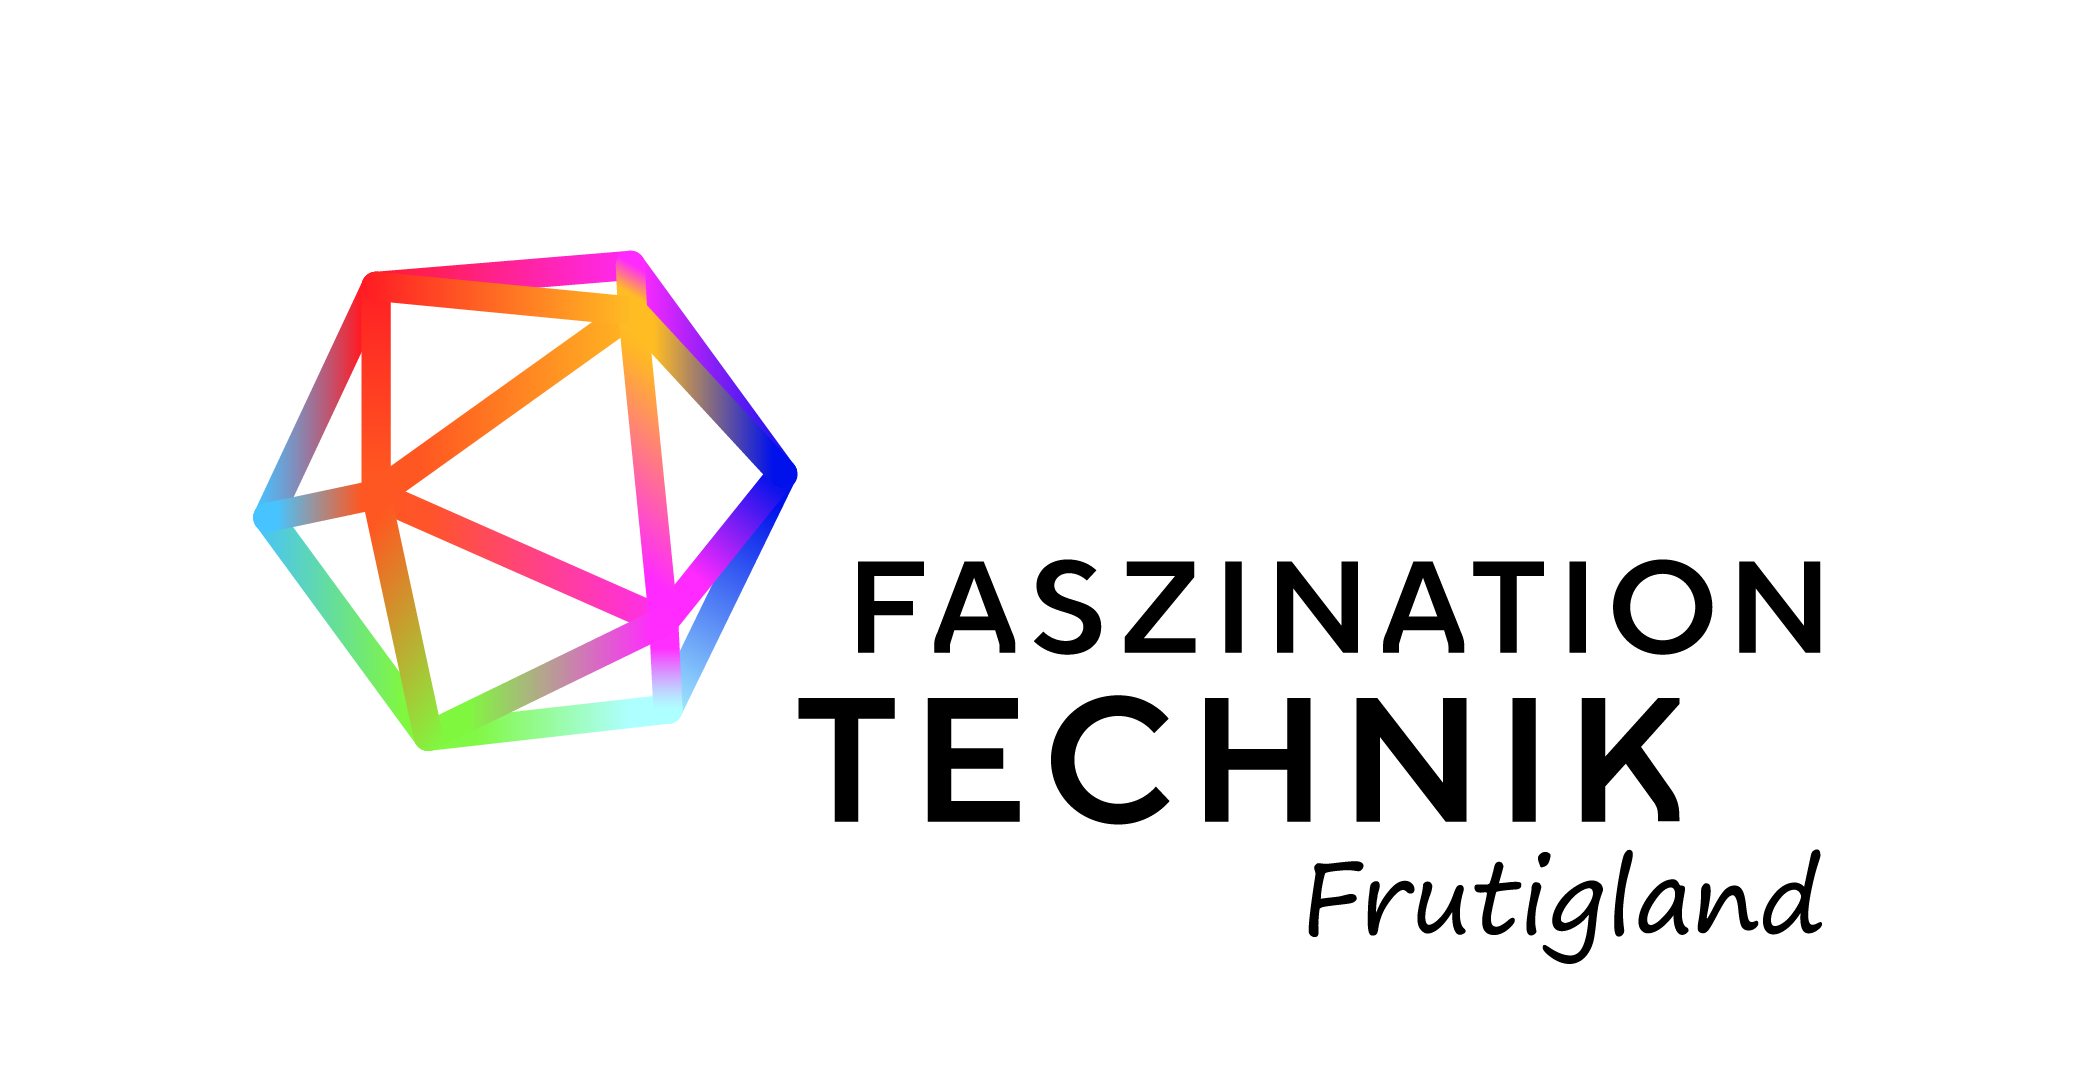 Faszination Technik Frutigland